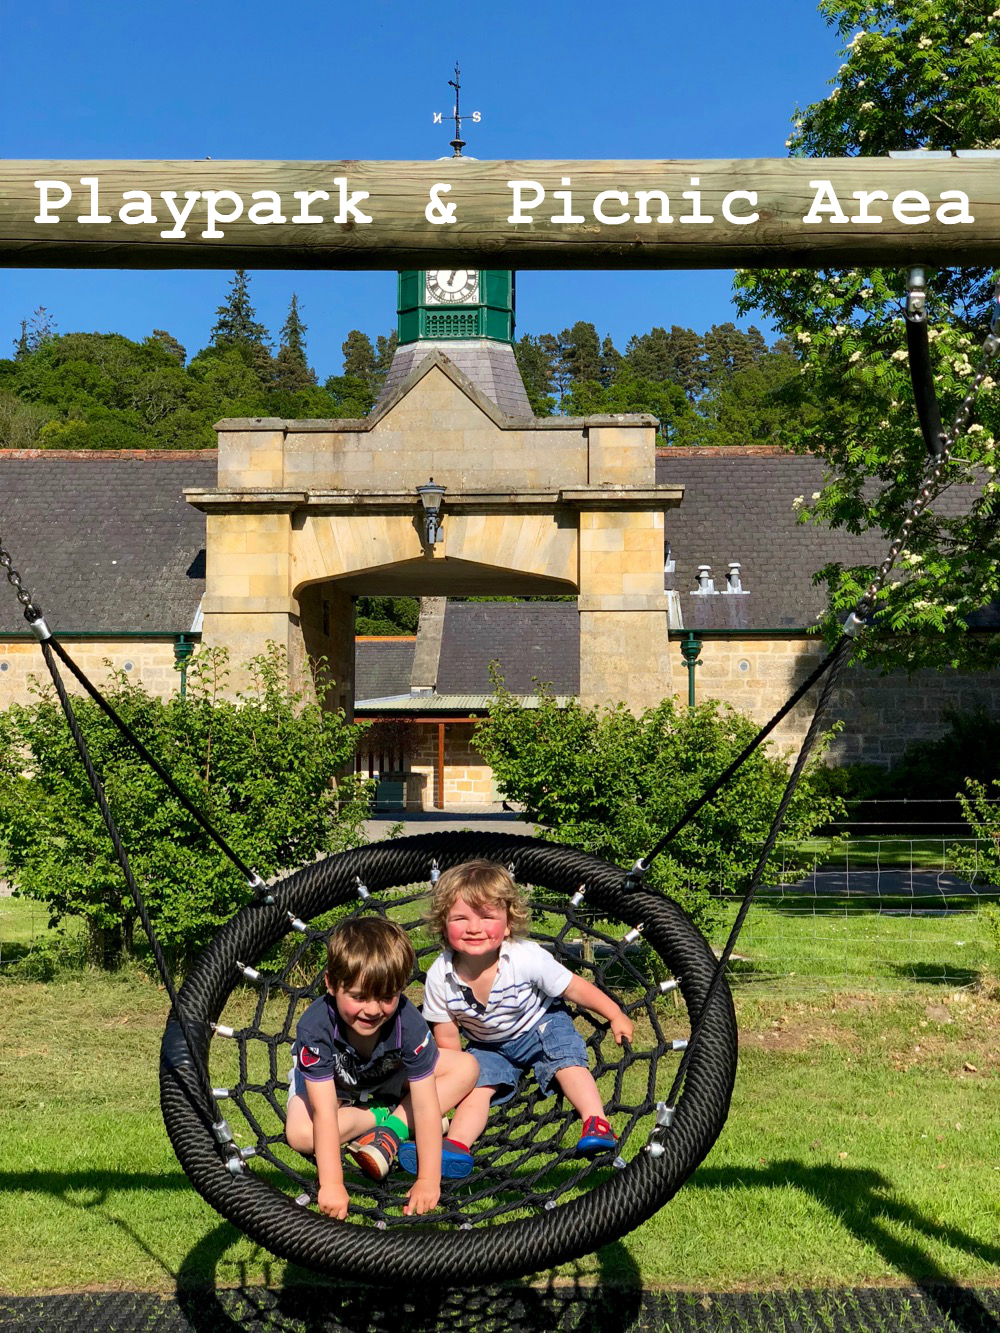 Playpark and picnic area at Logie Steading